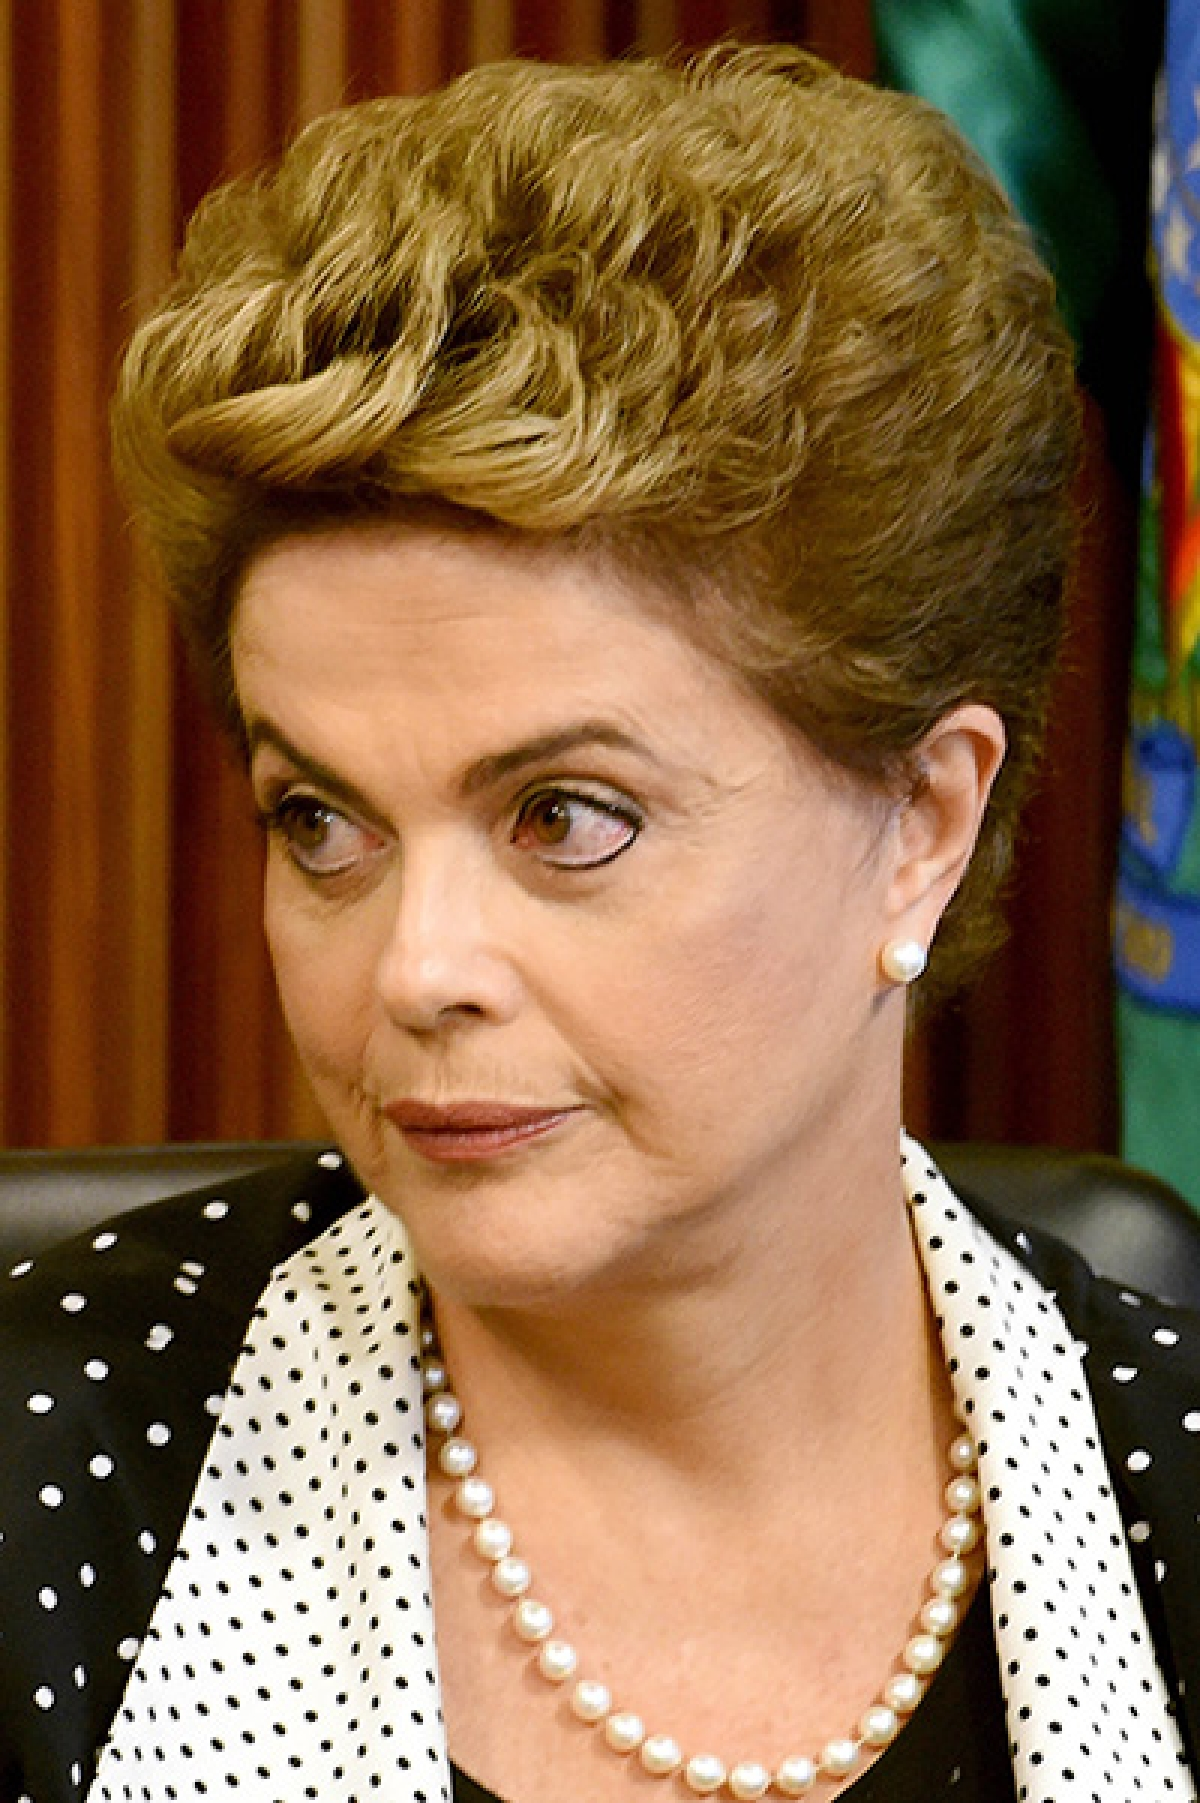 Brazilian President Dilma Rousseff attends a ministerial meeting to discuss new measures to combat the proliferation of Zika virus in Brazil, at the Planalto Palace in Brasilia, on February 1,  2016. The World Health Organization said today in Geneva that the spread of Zika and its possible connection with cases of microcephaly has become an international public health emergency. AFP PHOTO/EVARISTO SA